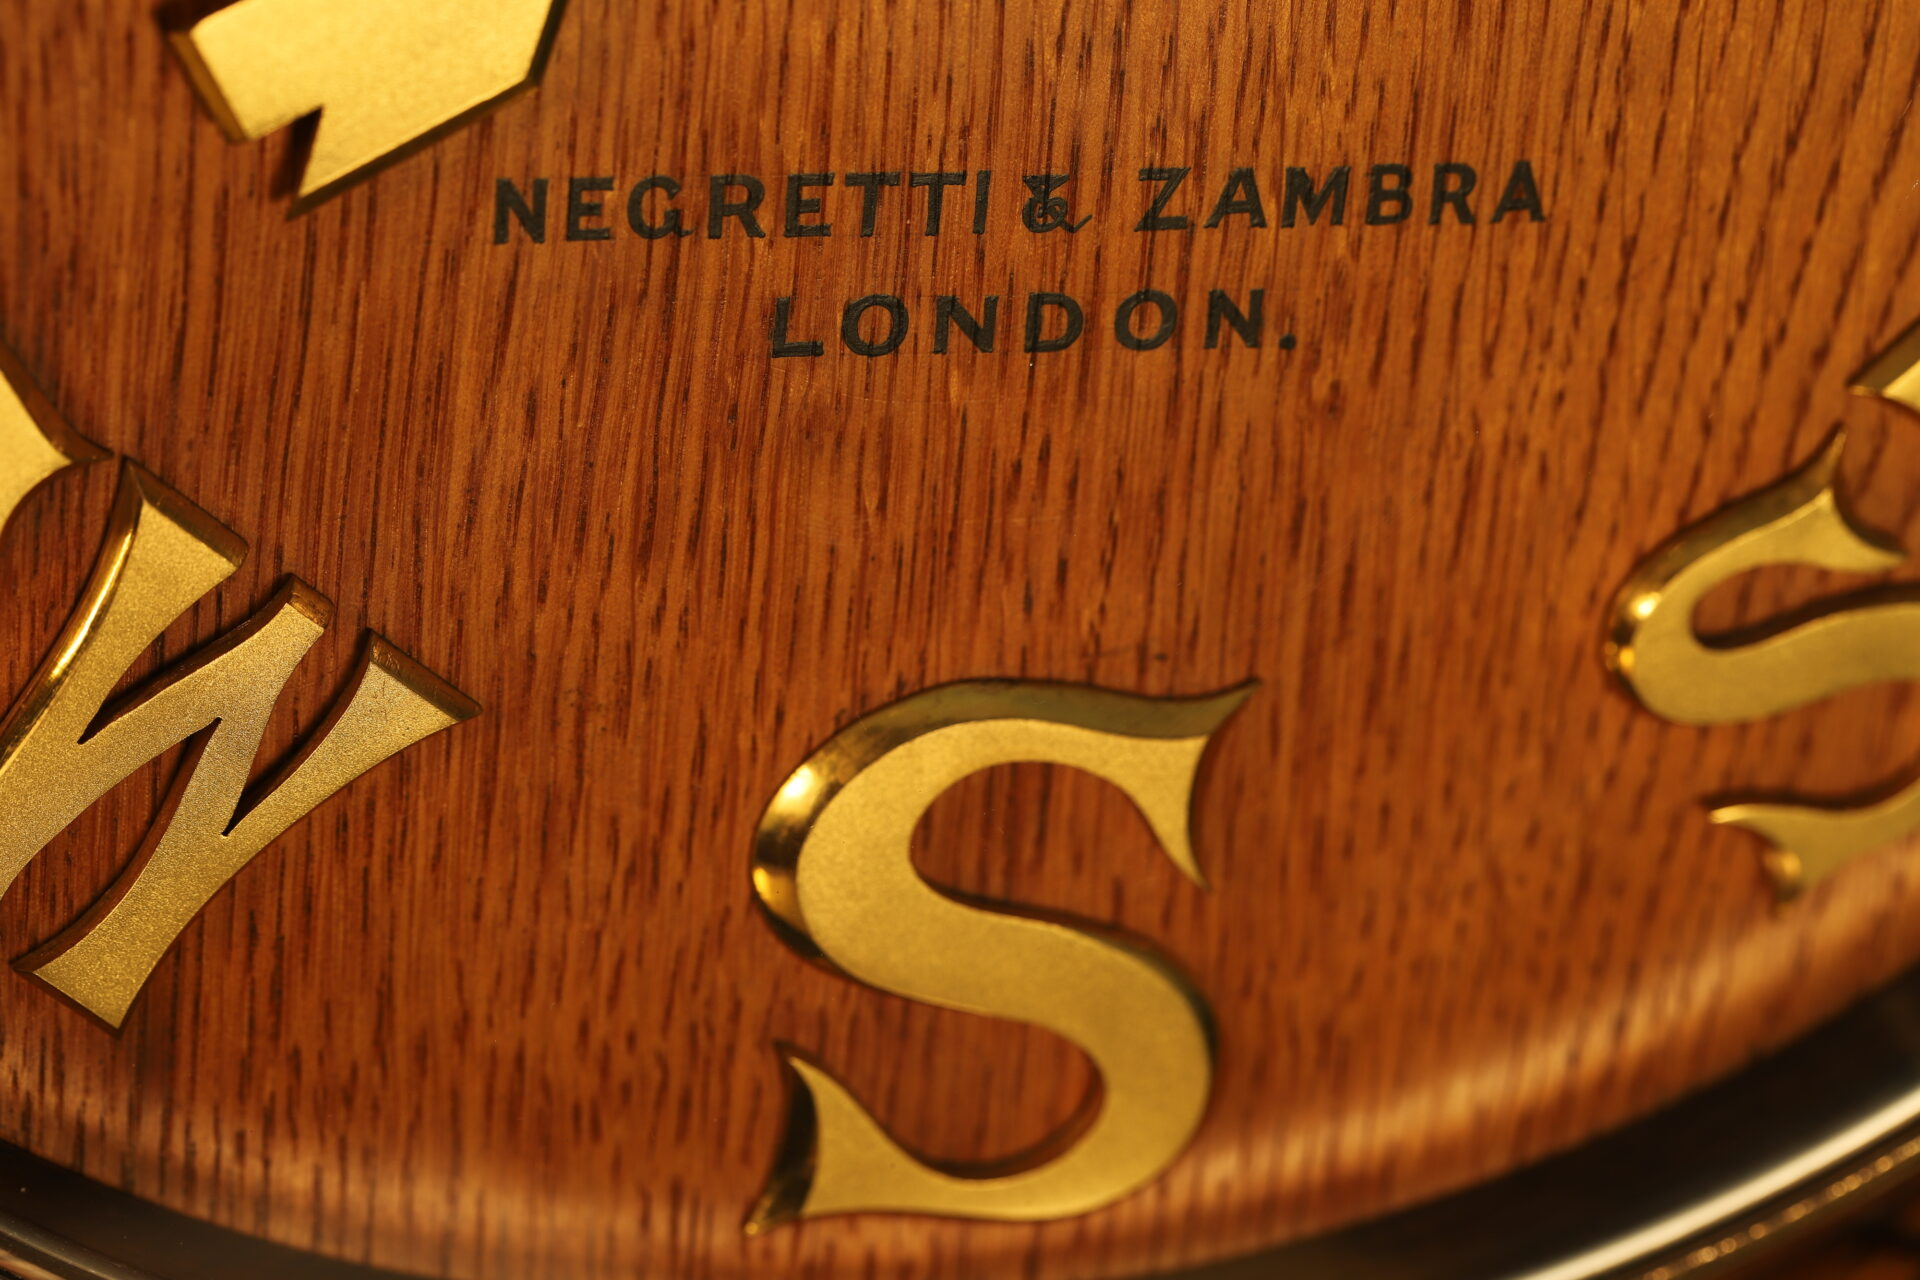 A front shot close up of the lower part of a substantial and beautiful Negretti & Zambra wind indicator, showing the signature